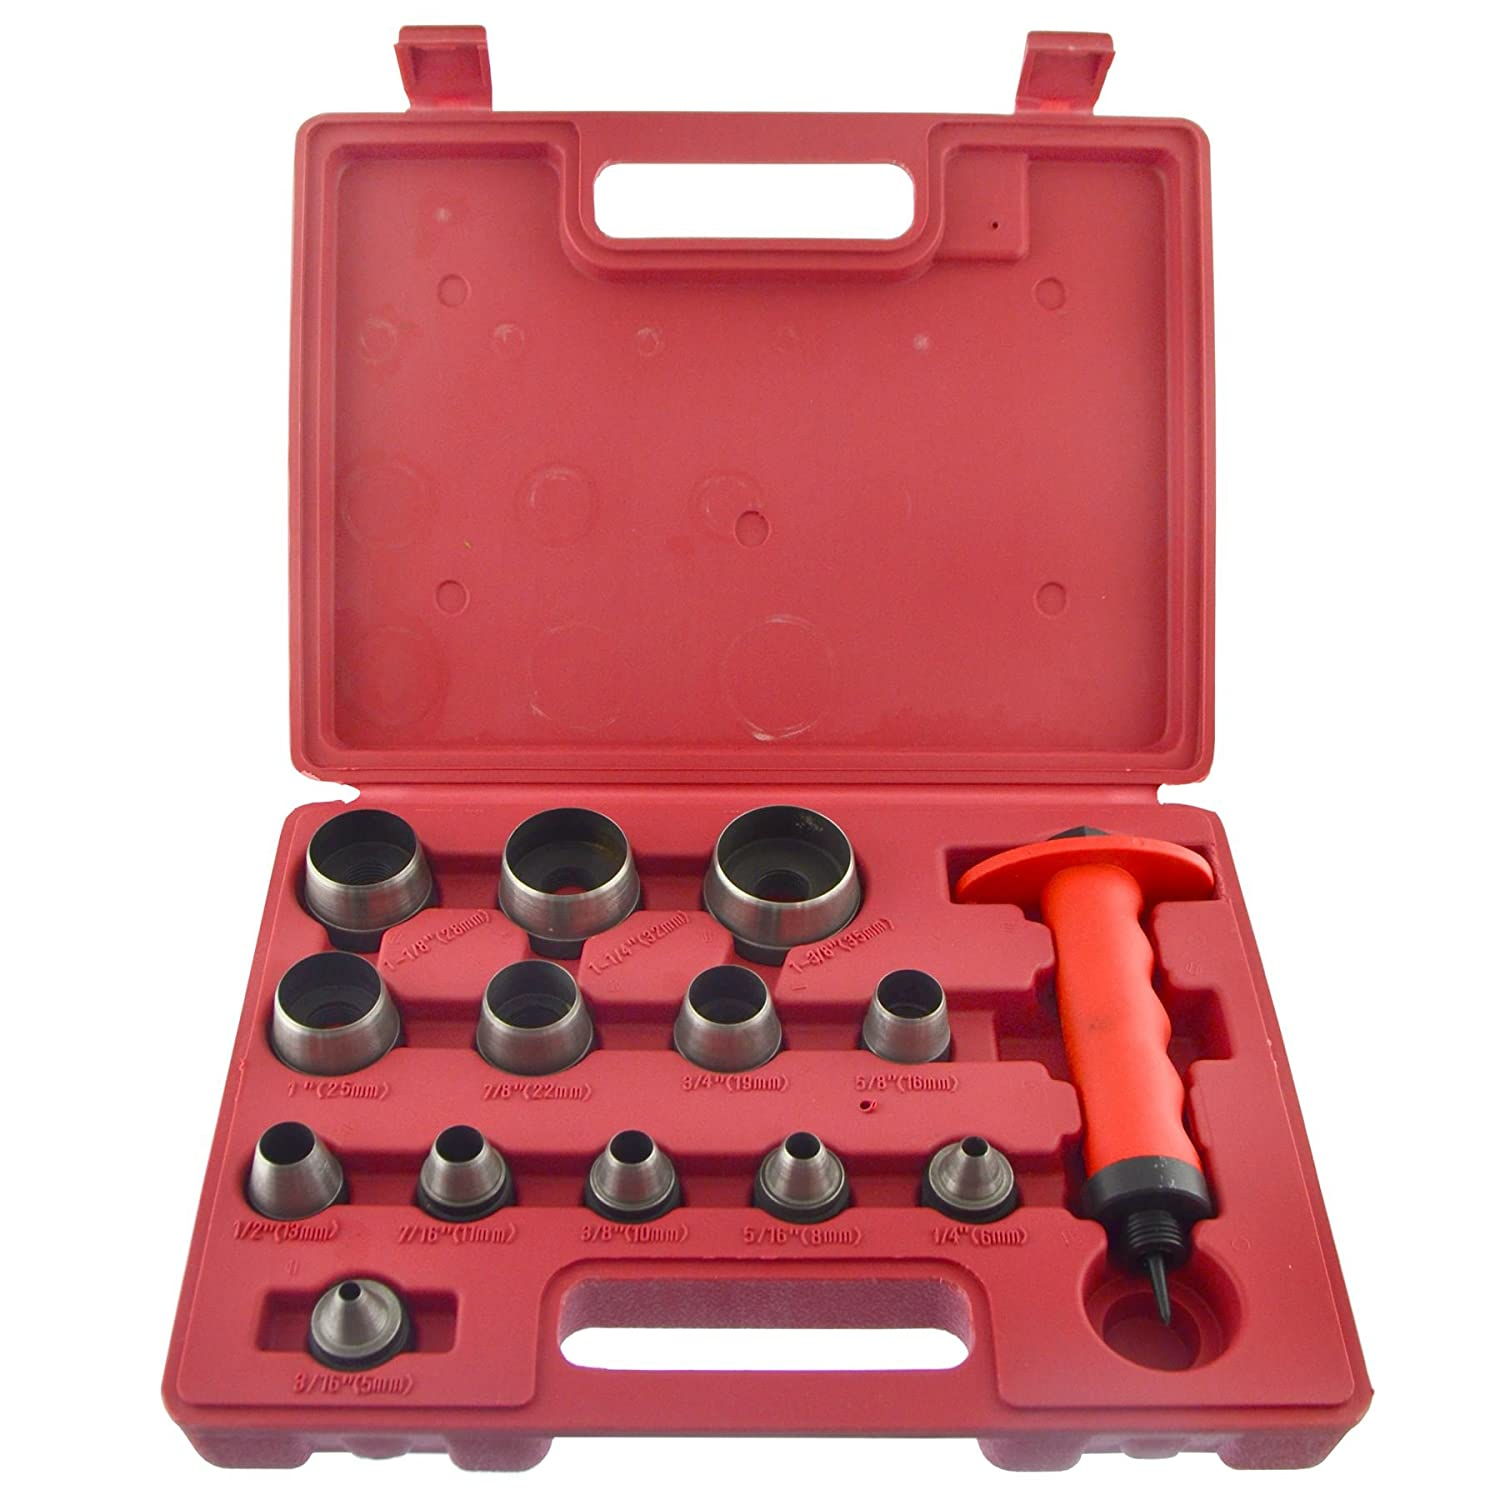 Hollow Punch Set Hole Punch Tool For Leather Plastic Foam Fibre 5-35mm 14pc Set AB Tools